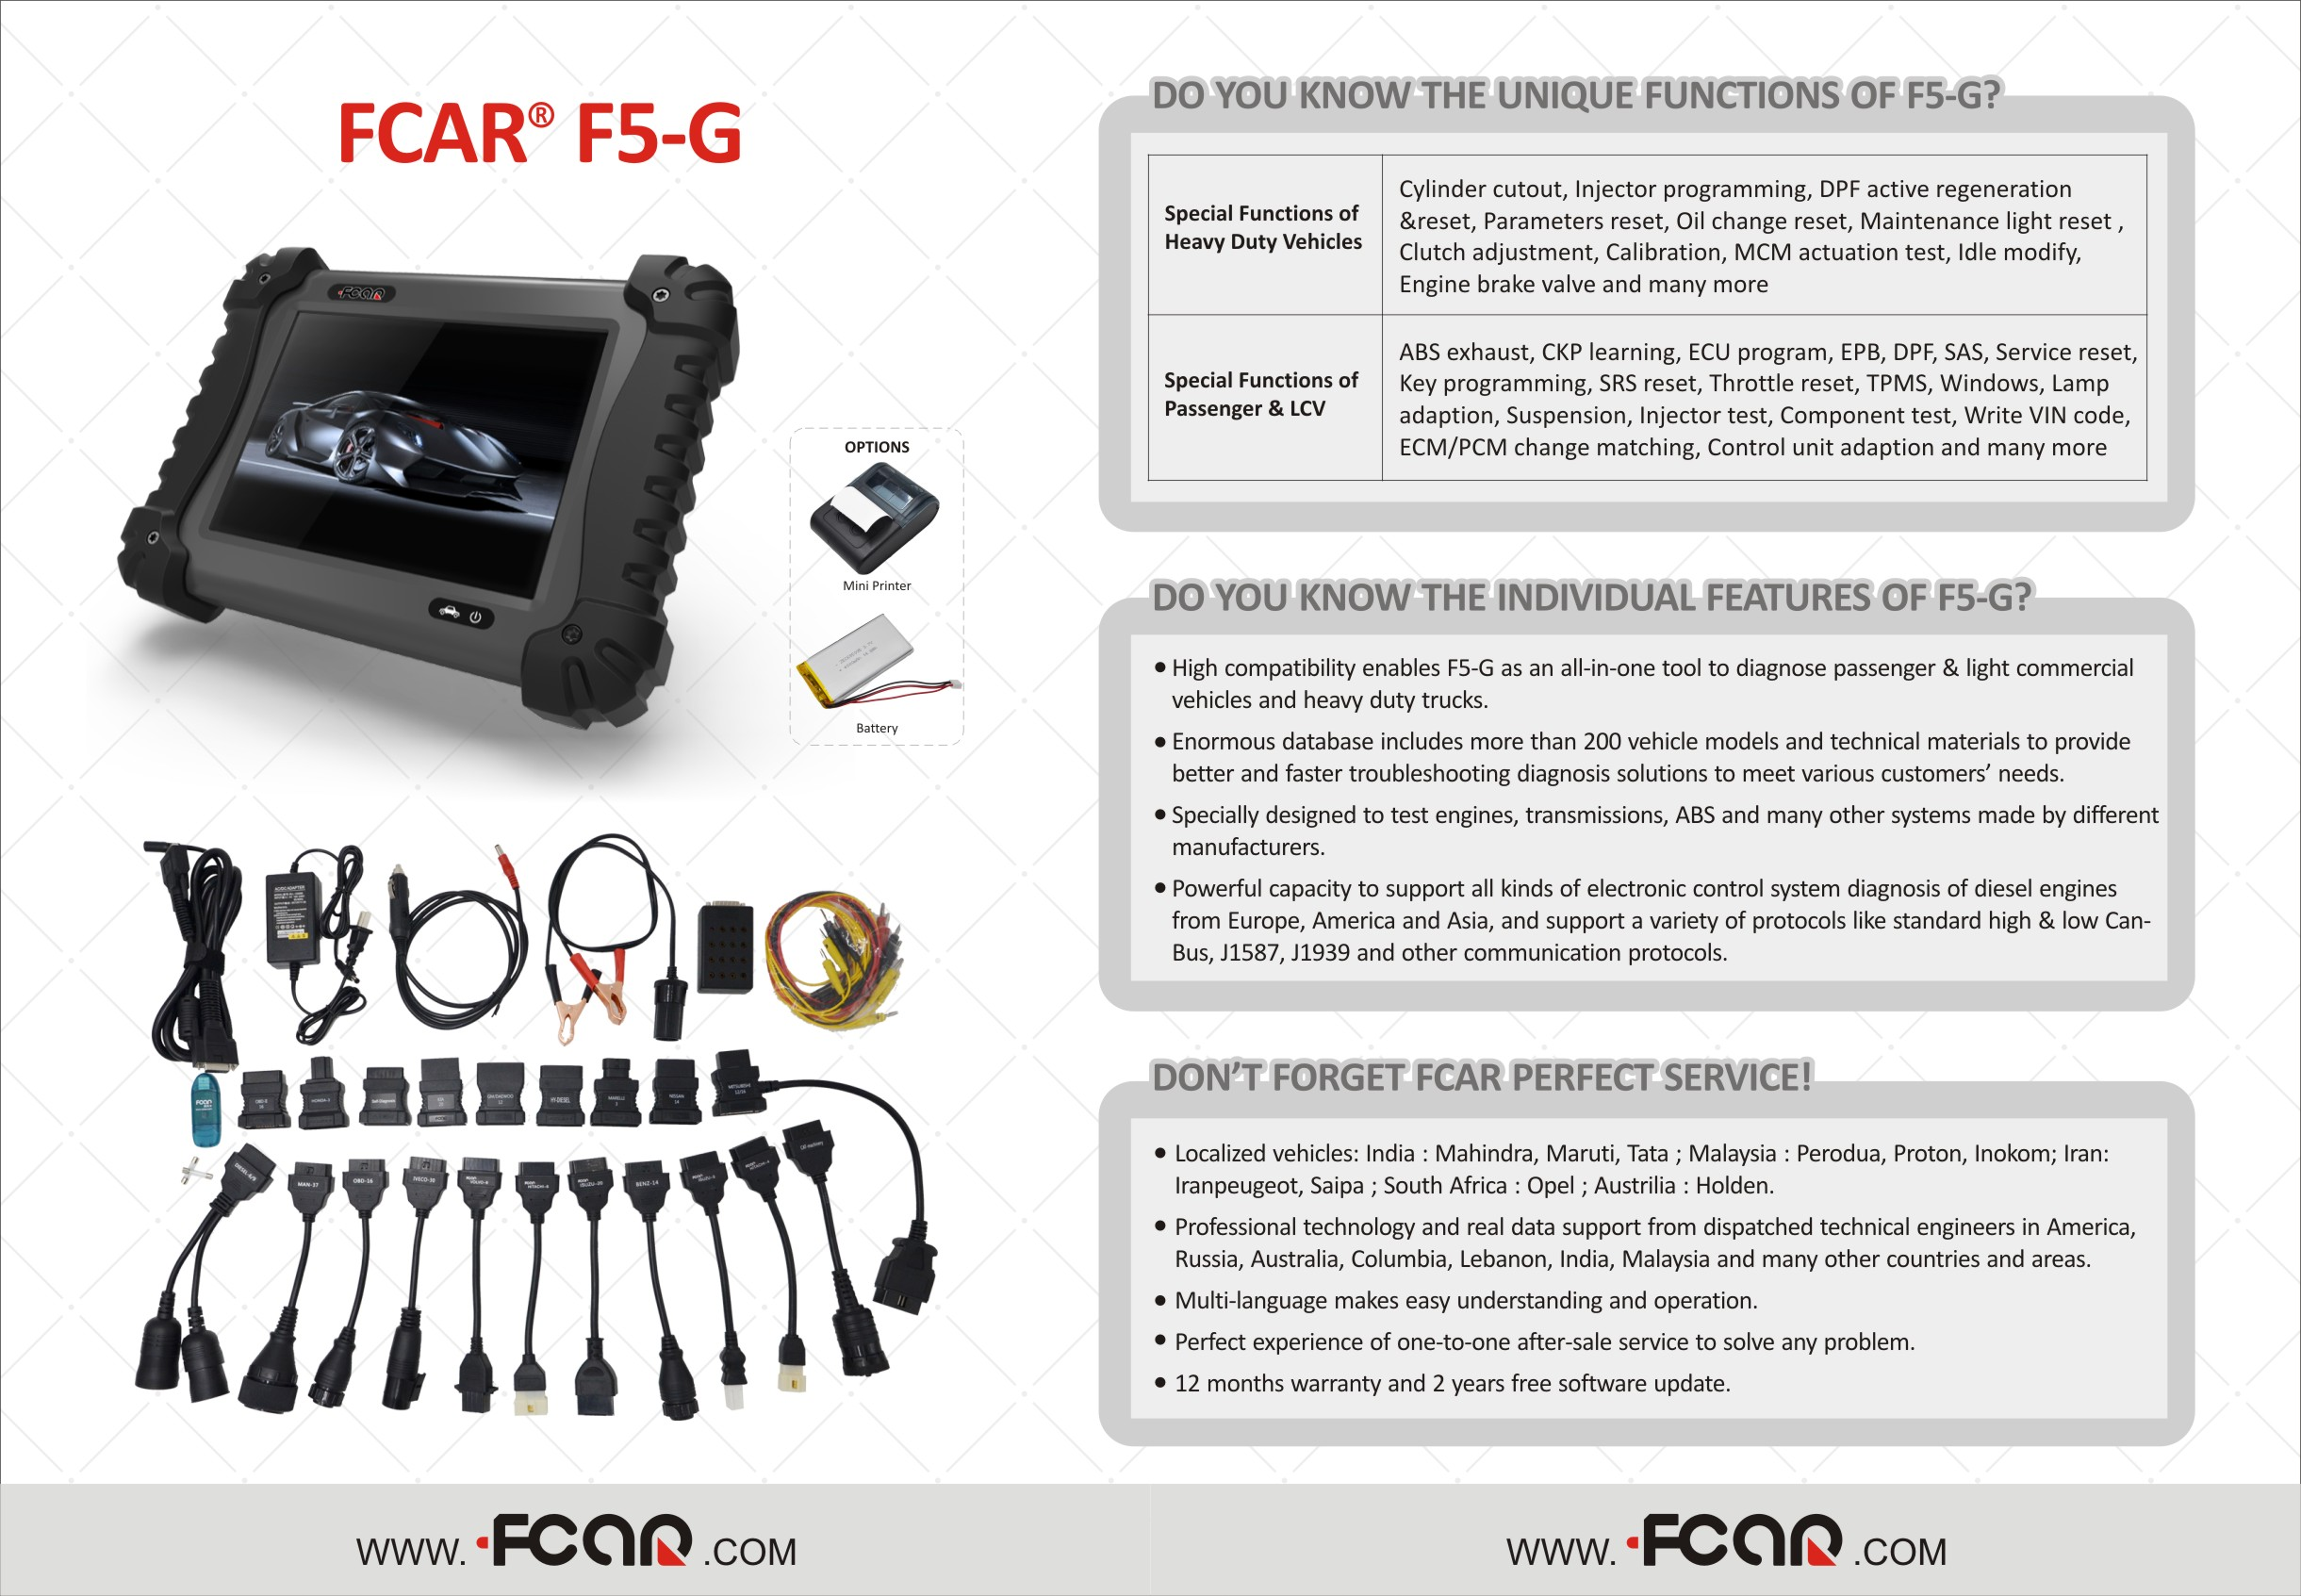 F5-G Trucks & Cars | The Industry Leader in Auto and Truck Diagnostics